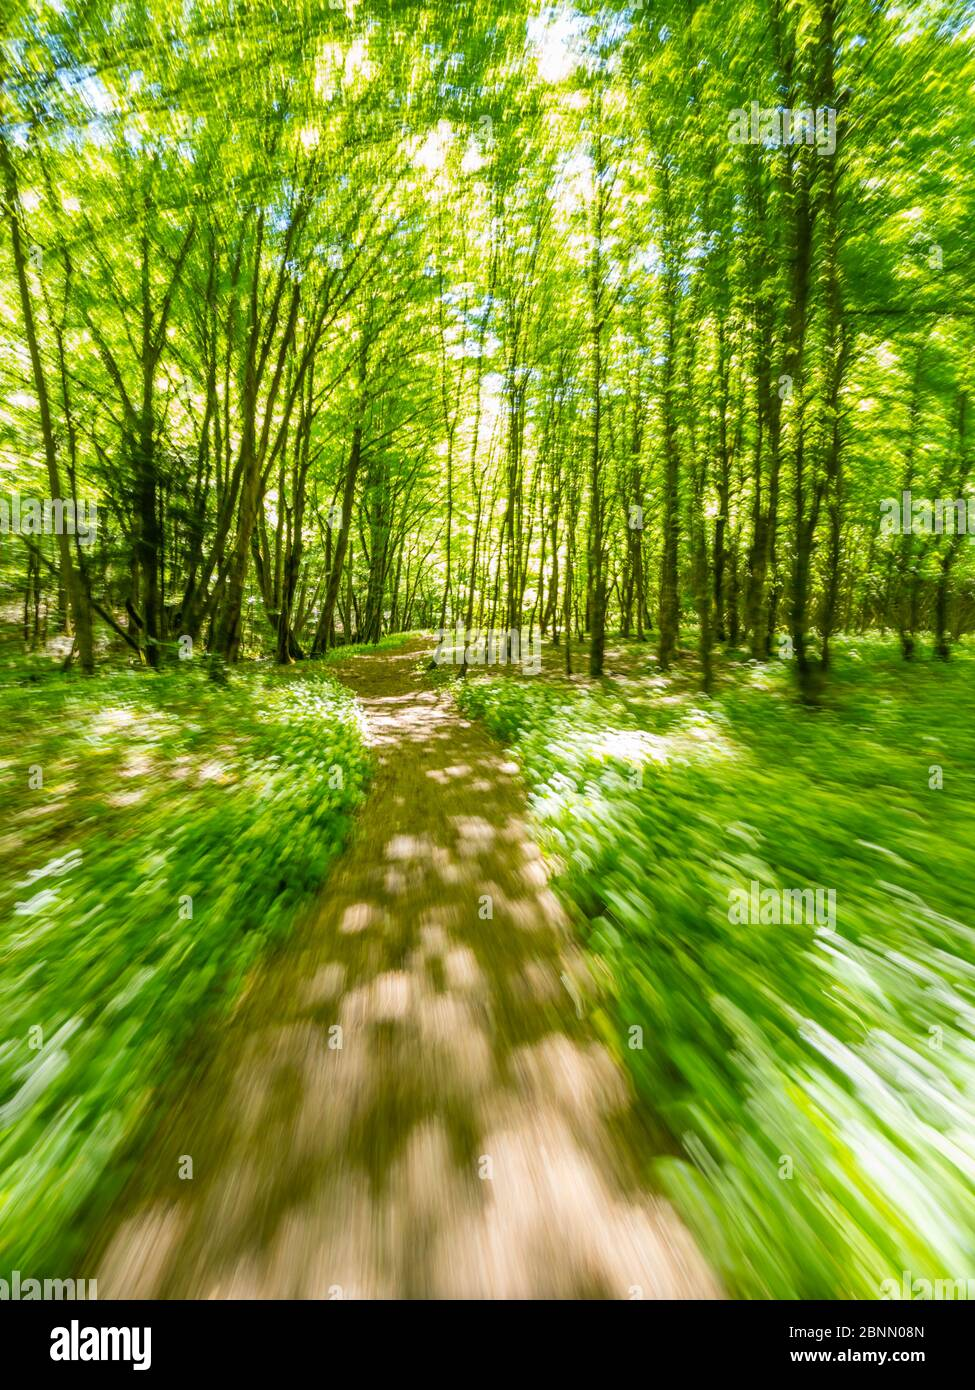 Stunning Spring Green nature color in forest while running simulated sprinter run intentionally blurry trail foottrail Zeleni vir Skrad Croatia Europe Stock Photo